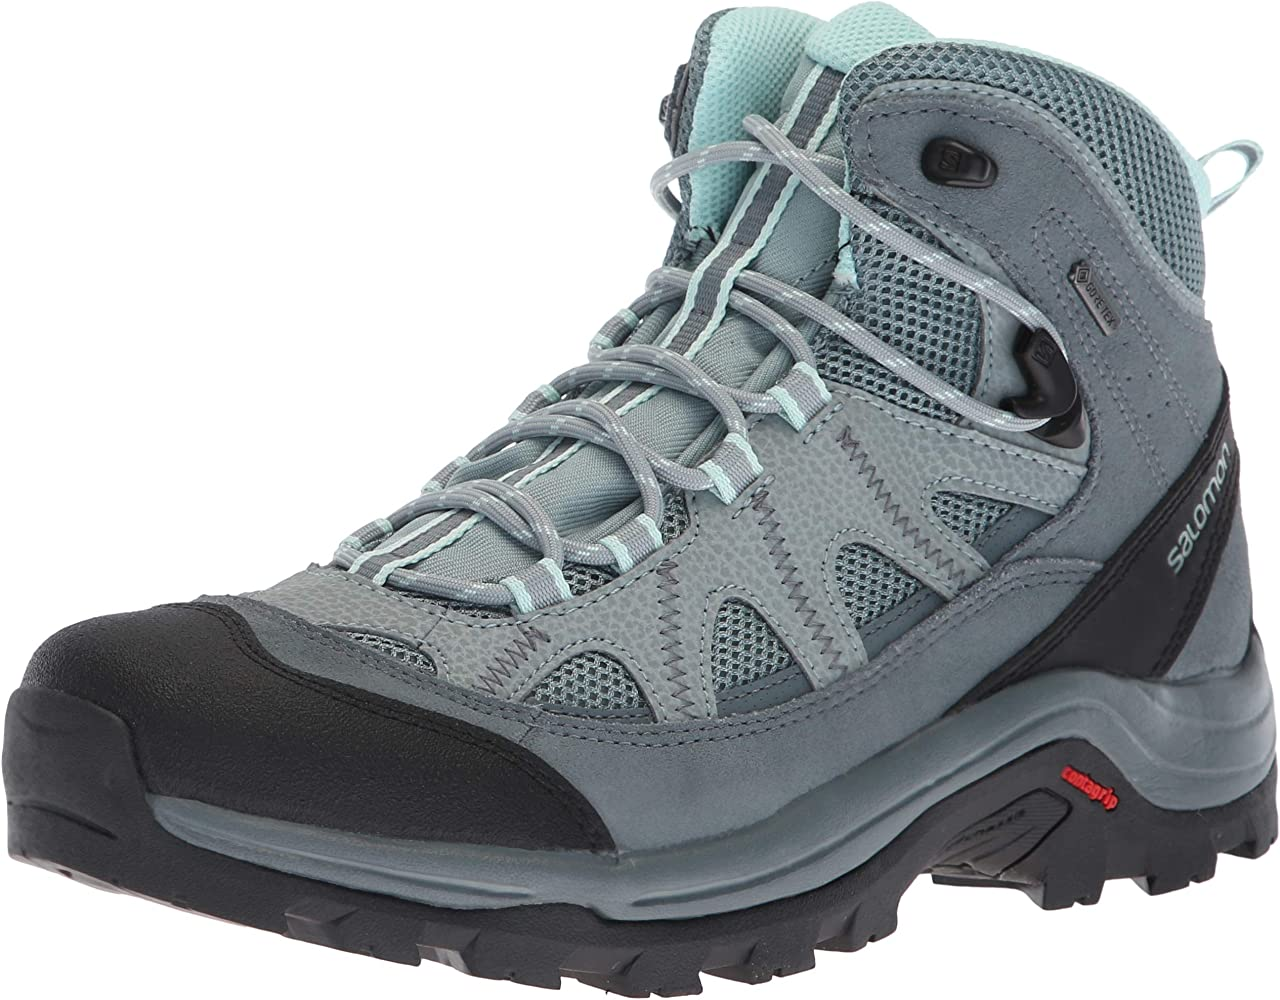 GORE-TEX Backpacking Boots